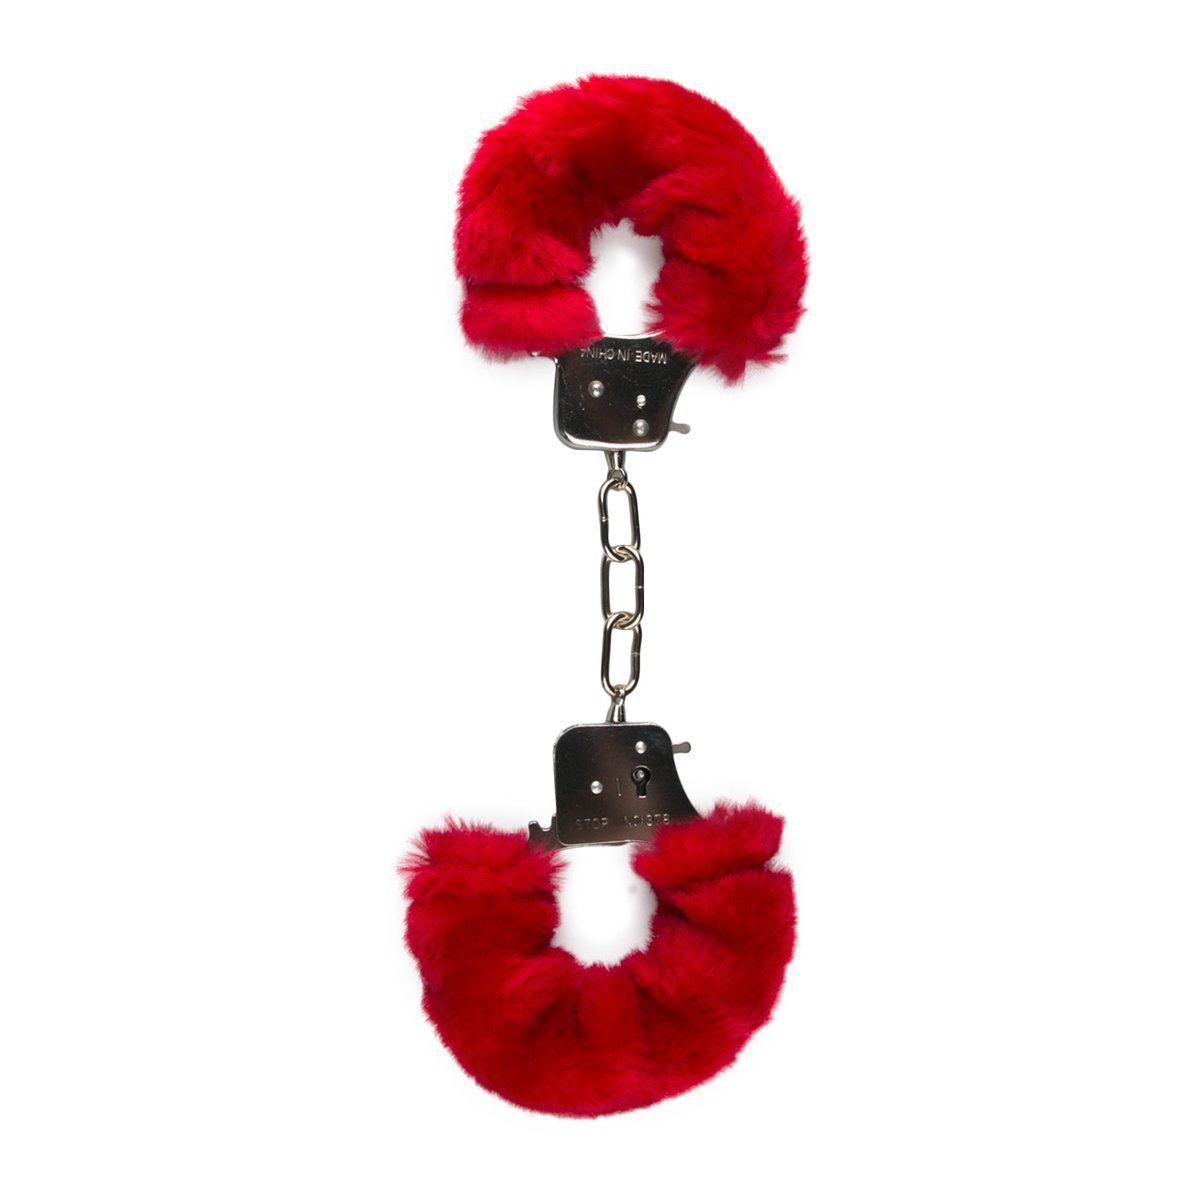 Easytoys Fetish Collection Hand Cuffs Furry Handcuffs - Red